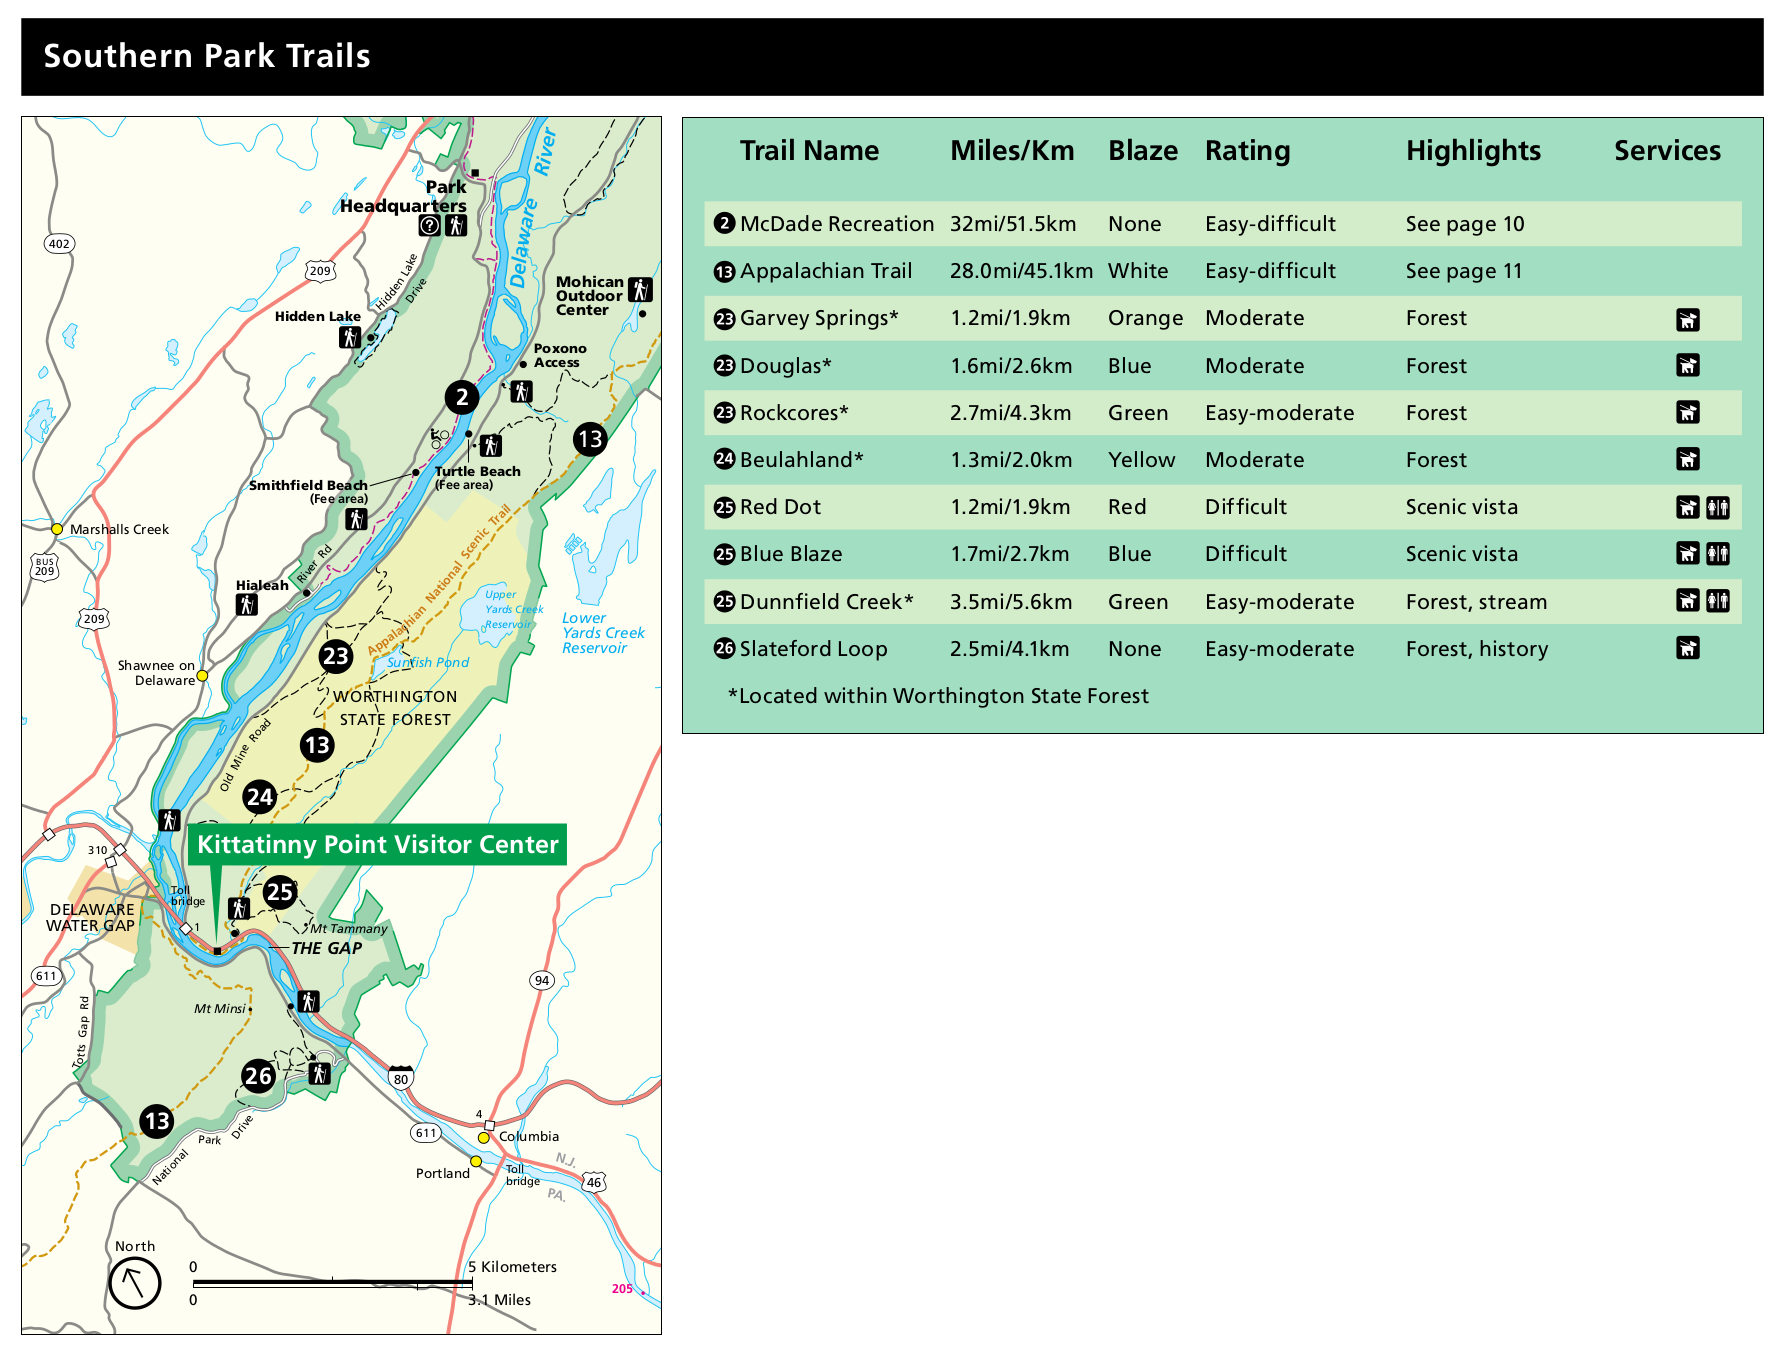 delaware water gap national recreation area map Delaware Water Gap Maps Npmaps Com Just Free Maps Period delaware water gap national recreation area map